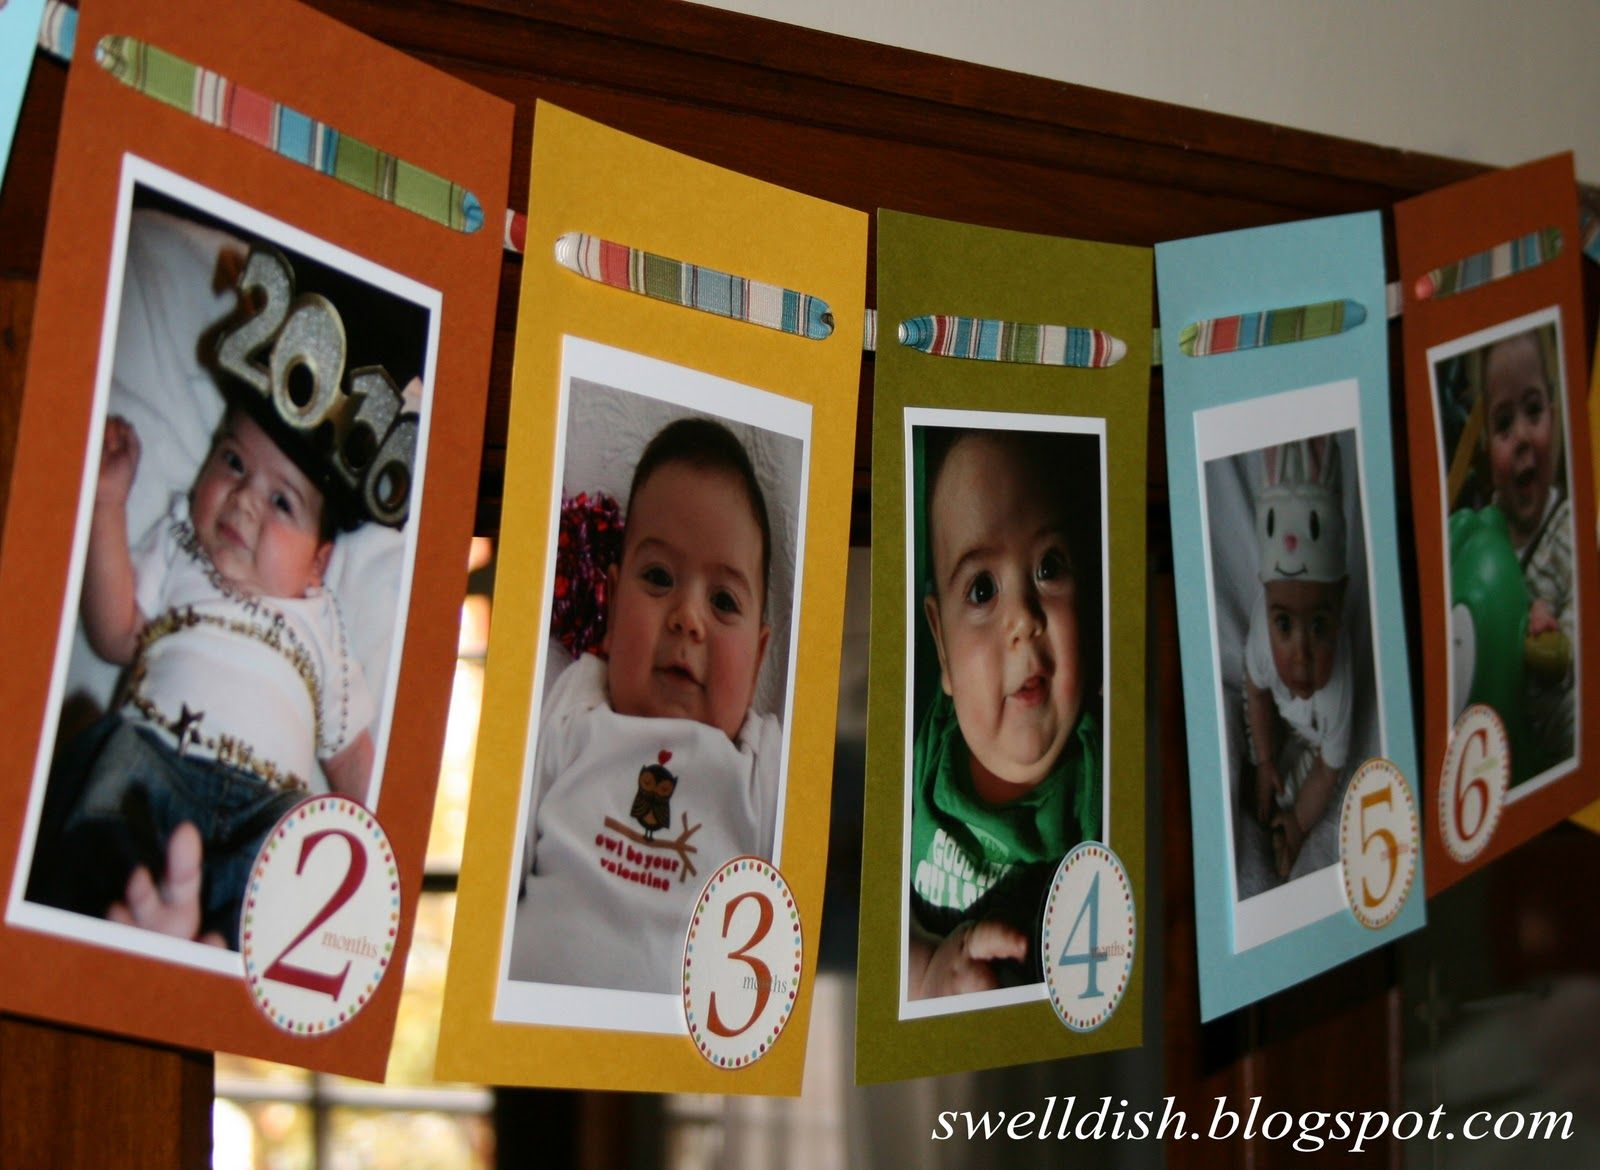 Monthly Banner For 1st Birthday Or Since 1st Birthday Has Passed Maybe Y 18th Birthday Decorations 18th Birthday Gifts For Boys 18th Birthday Ideas For Boys